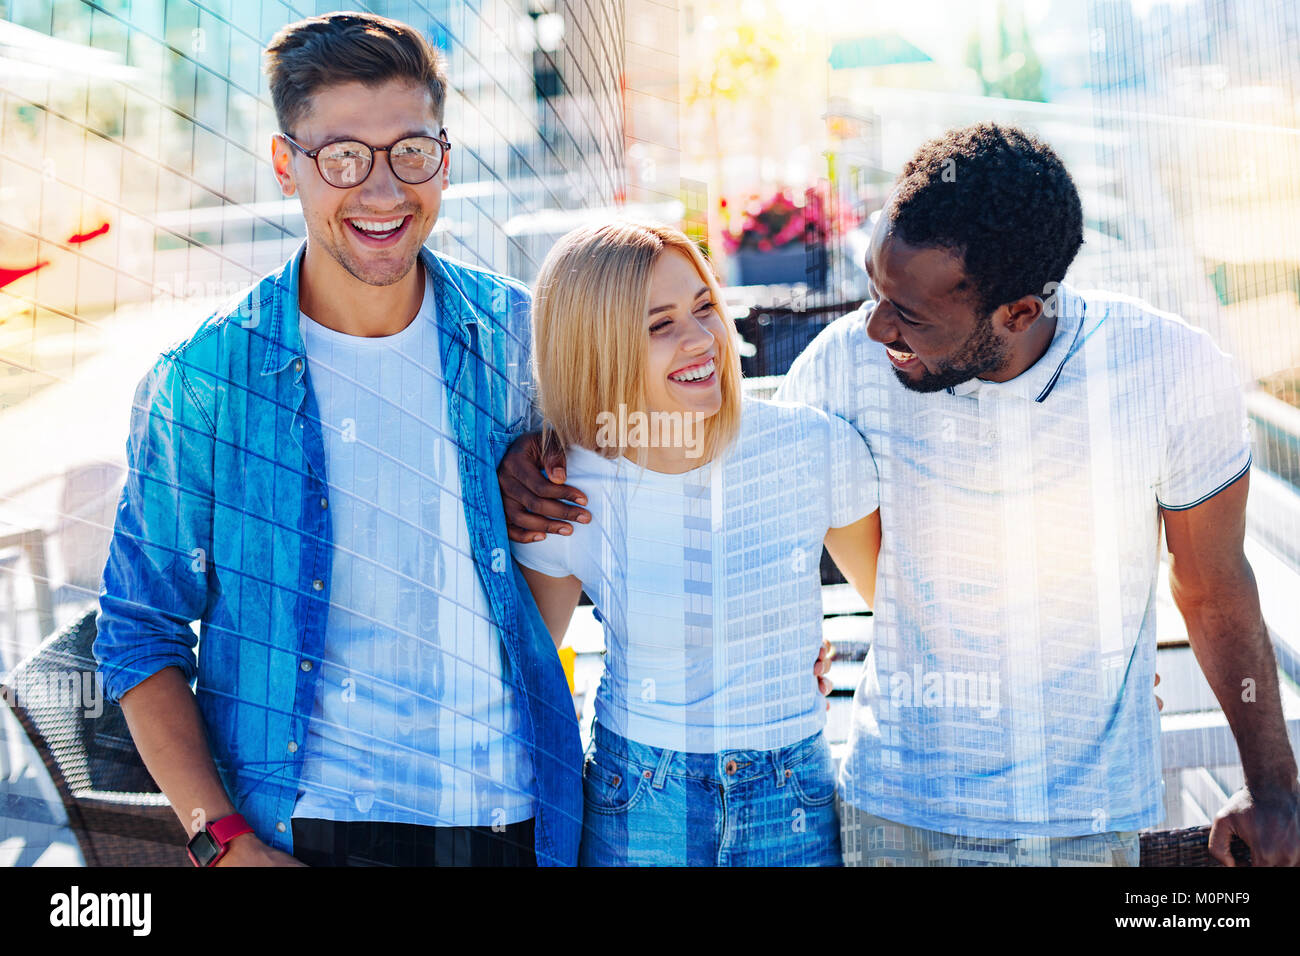 Smiling young people working together - Stock Image